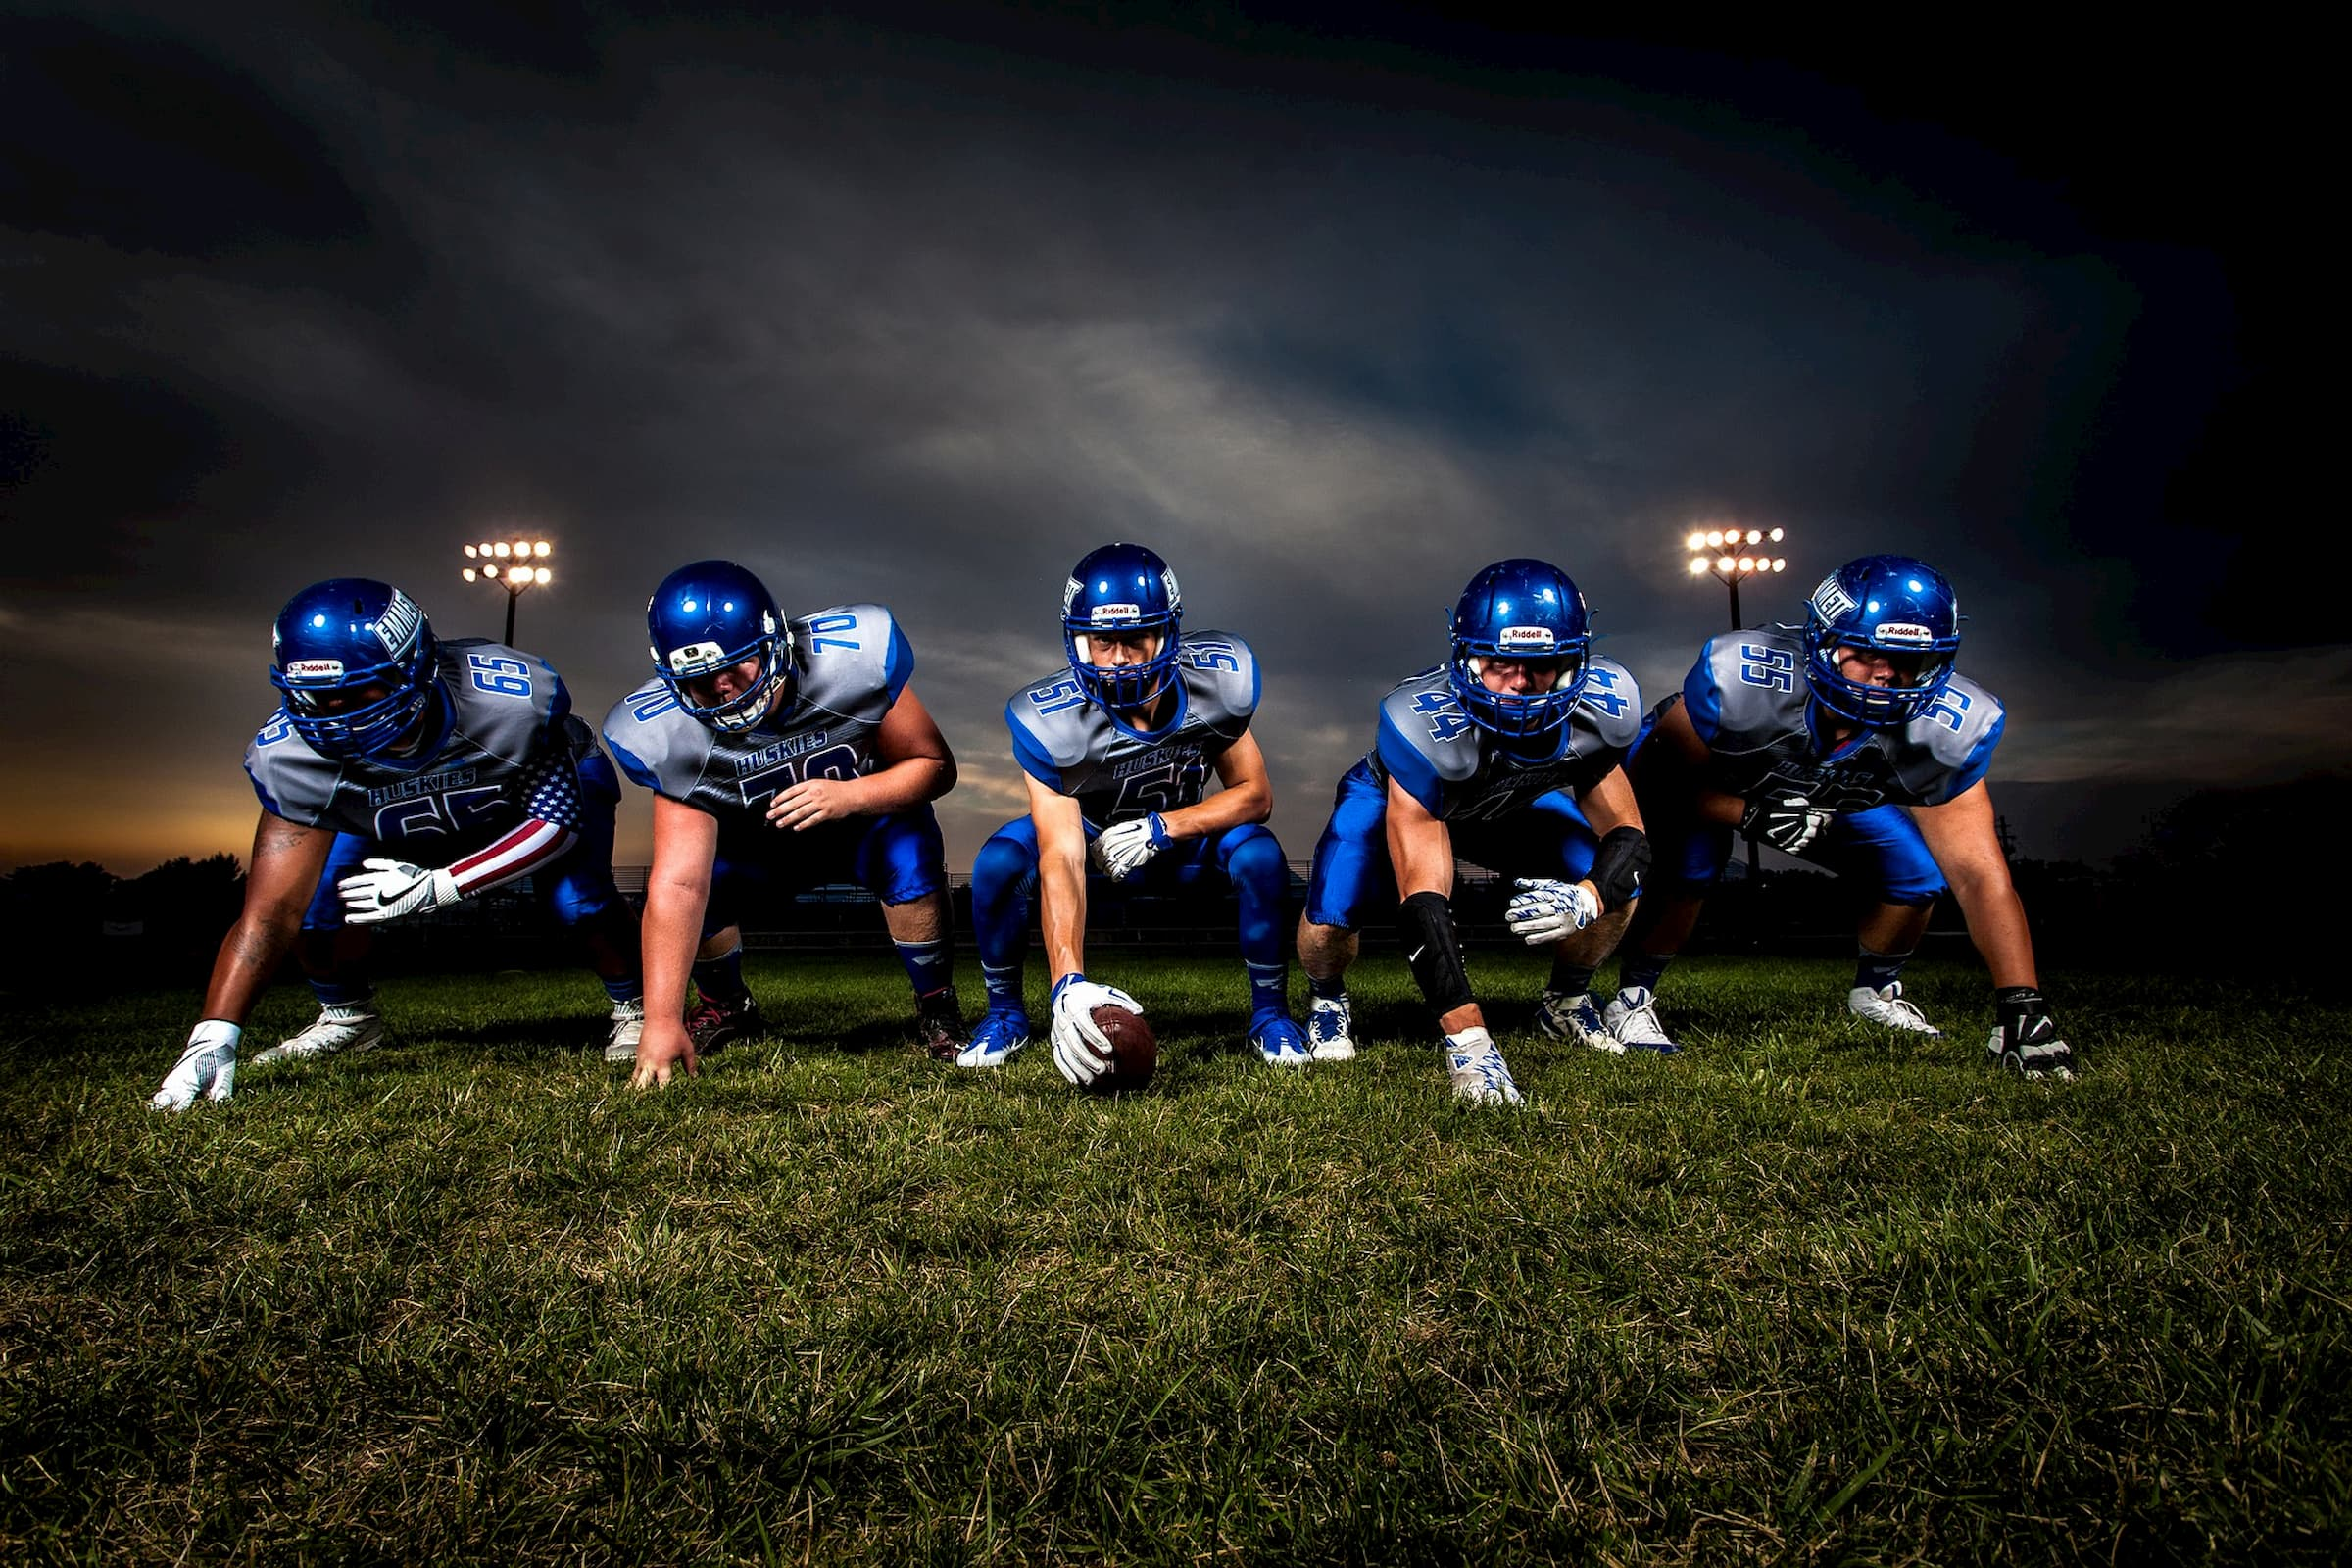 group of football players on the line in full pads wearing blue uniforms and helmets on dark grass with dark sky behind them